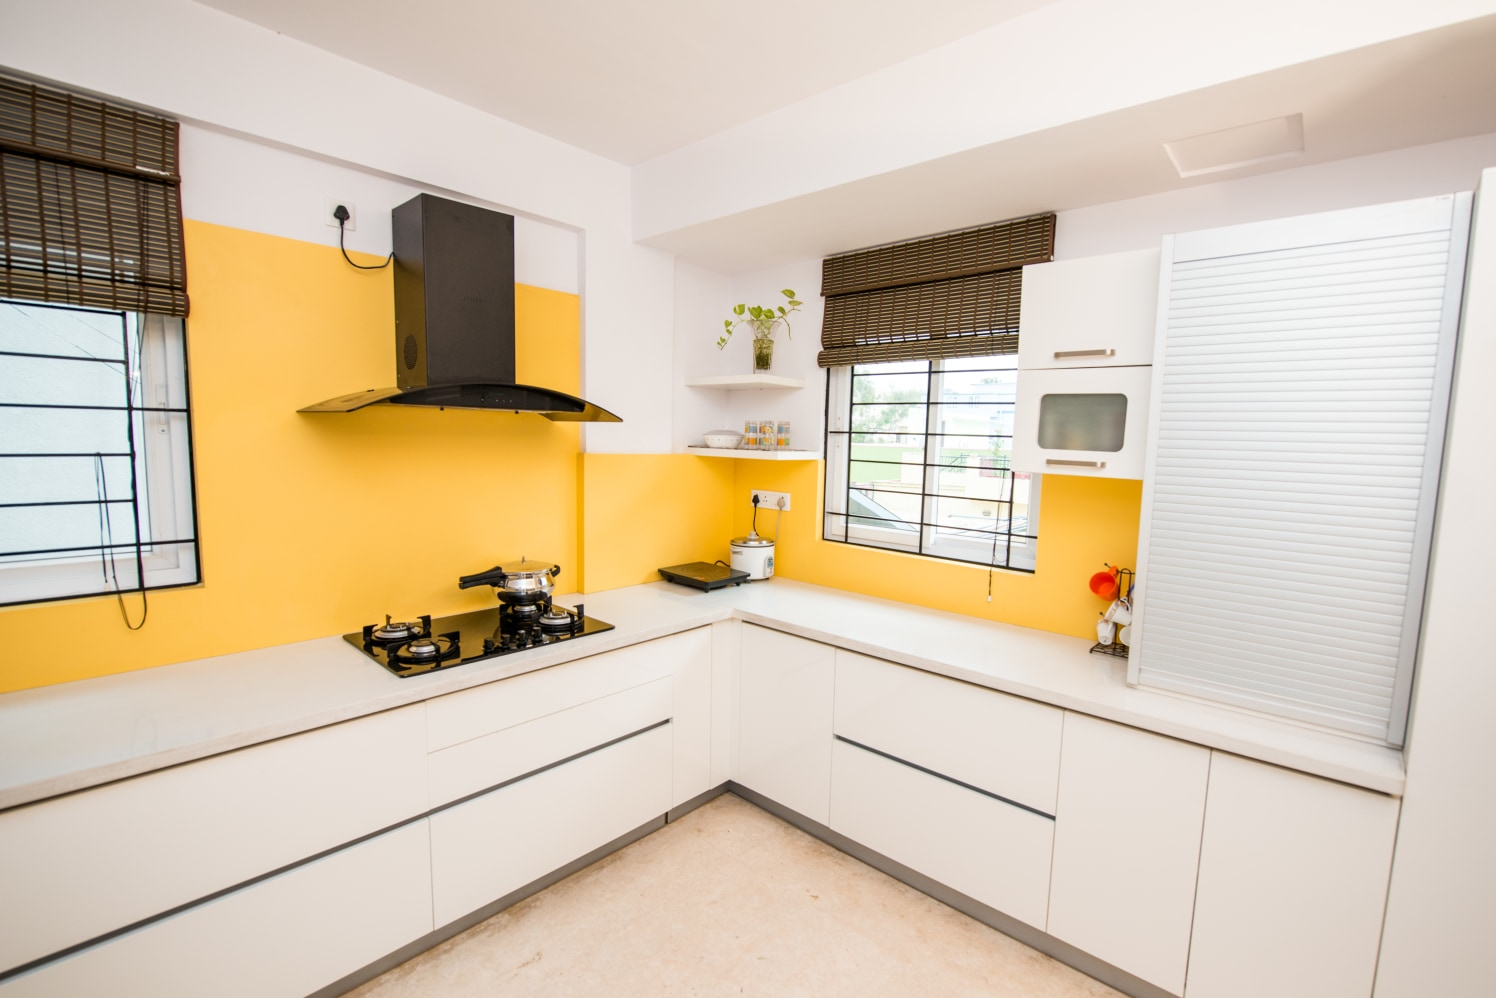 White Themed Modular Kitchen with L Shaped Counter and Yellow Walls by Shyama Viswanathan Modular-kitchen Contemporary | Interior Design Photos & Ideas